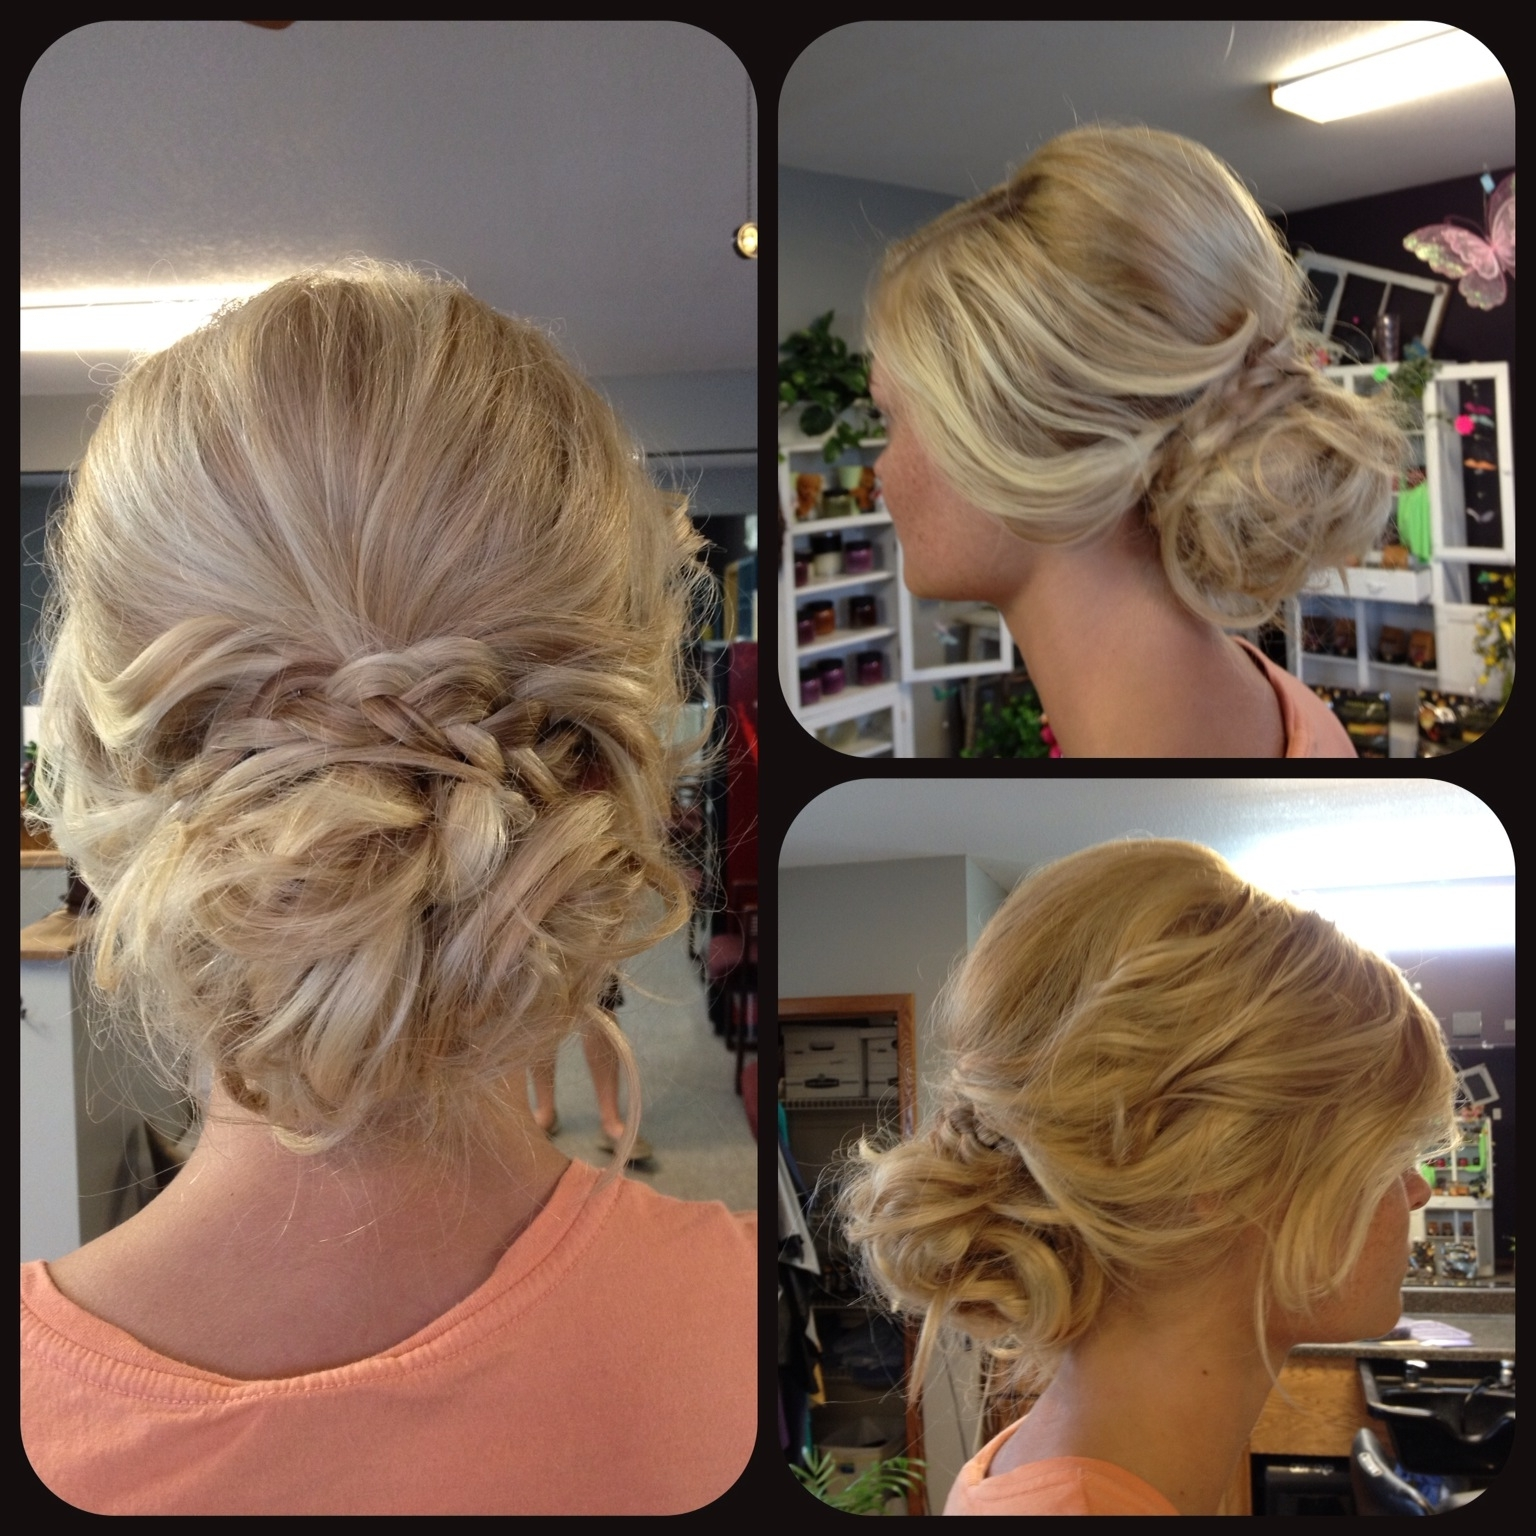 Prom Updo Upstyle Loose Messy Curly Curled Braid Blonde Wedding With Regard To Messy Updo Hairstyles For Prom (View 6 of 15)